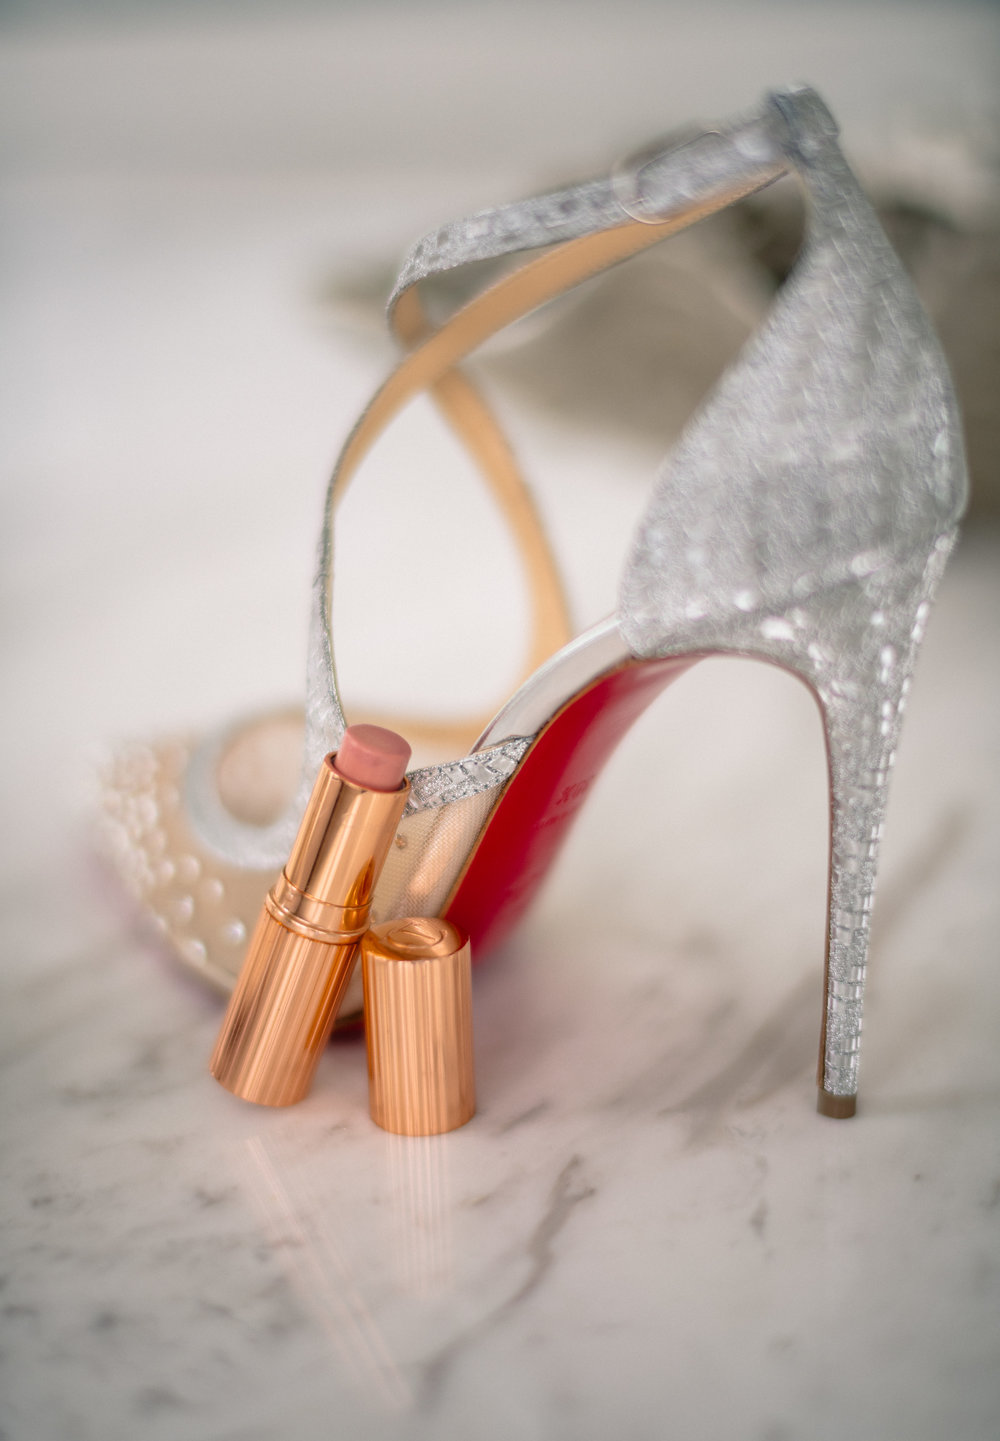 Christian Louboutin wedding shoes Turks Caicos photographer Matt Steeves.jpg